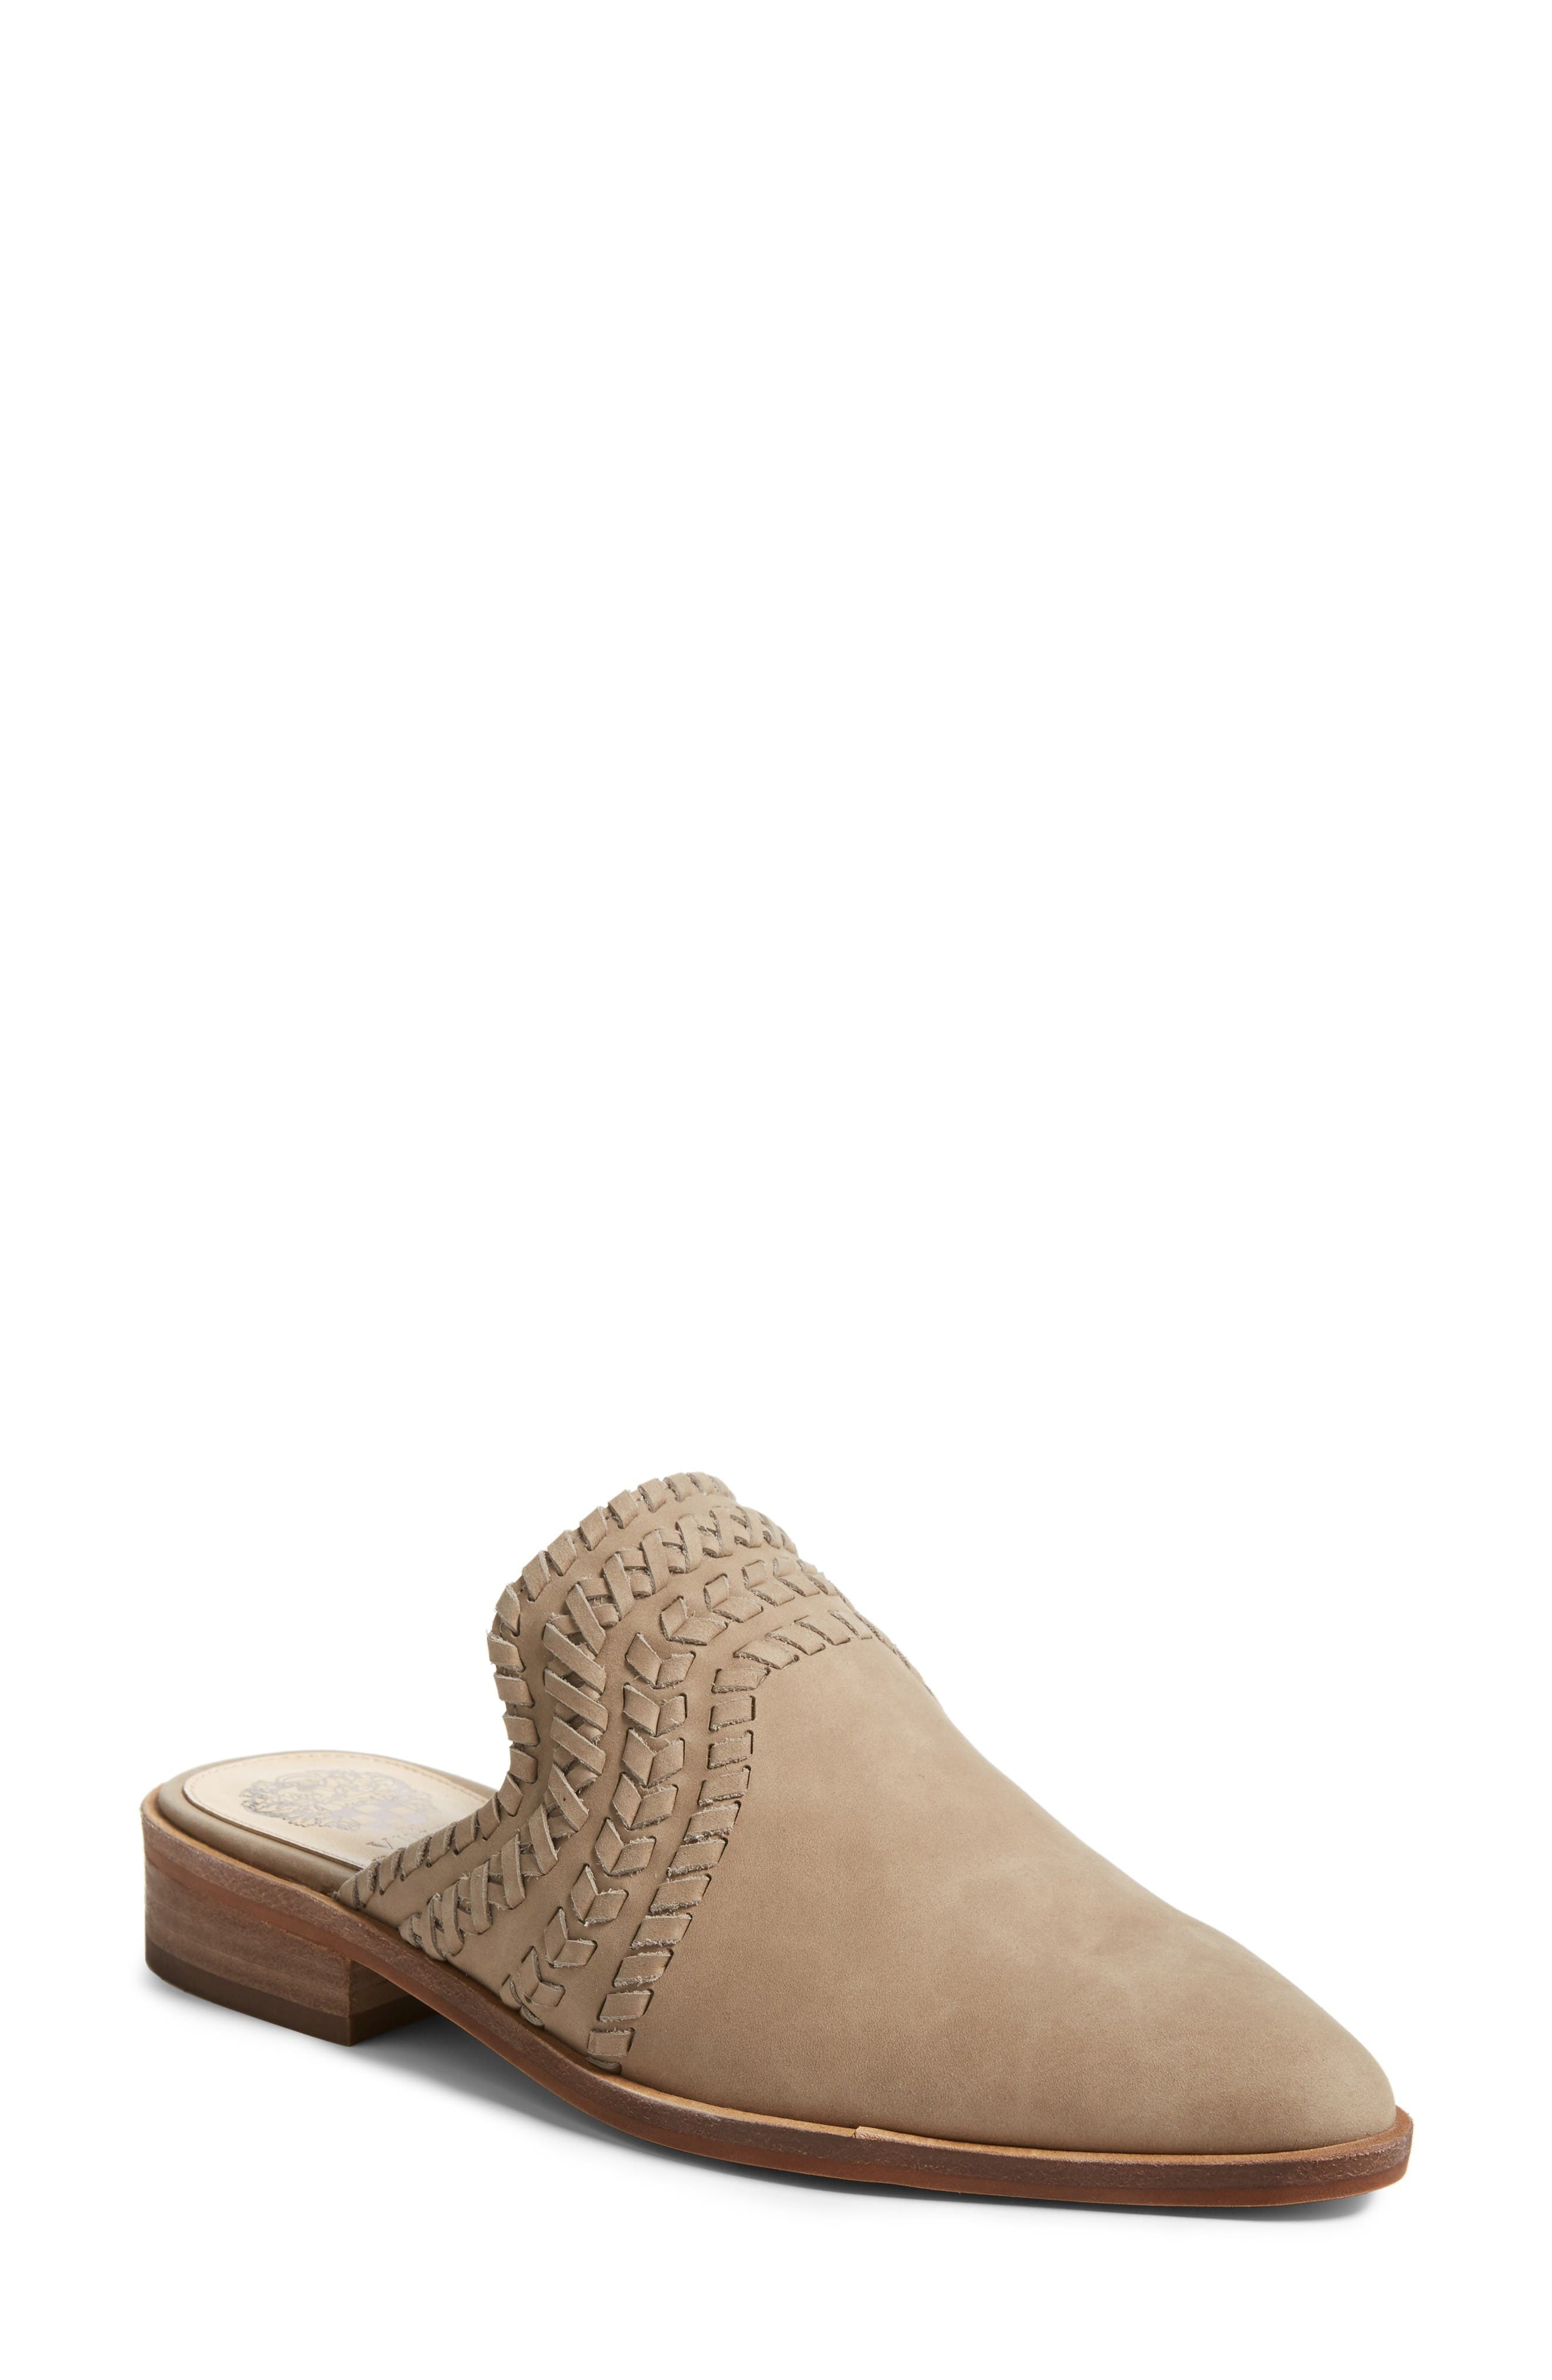 VINCE CAMUTO Sona Mule